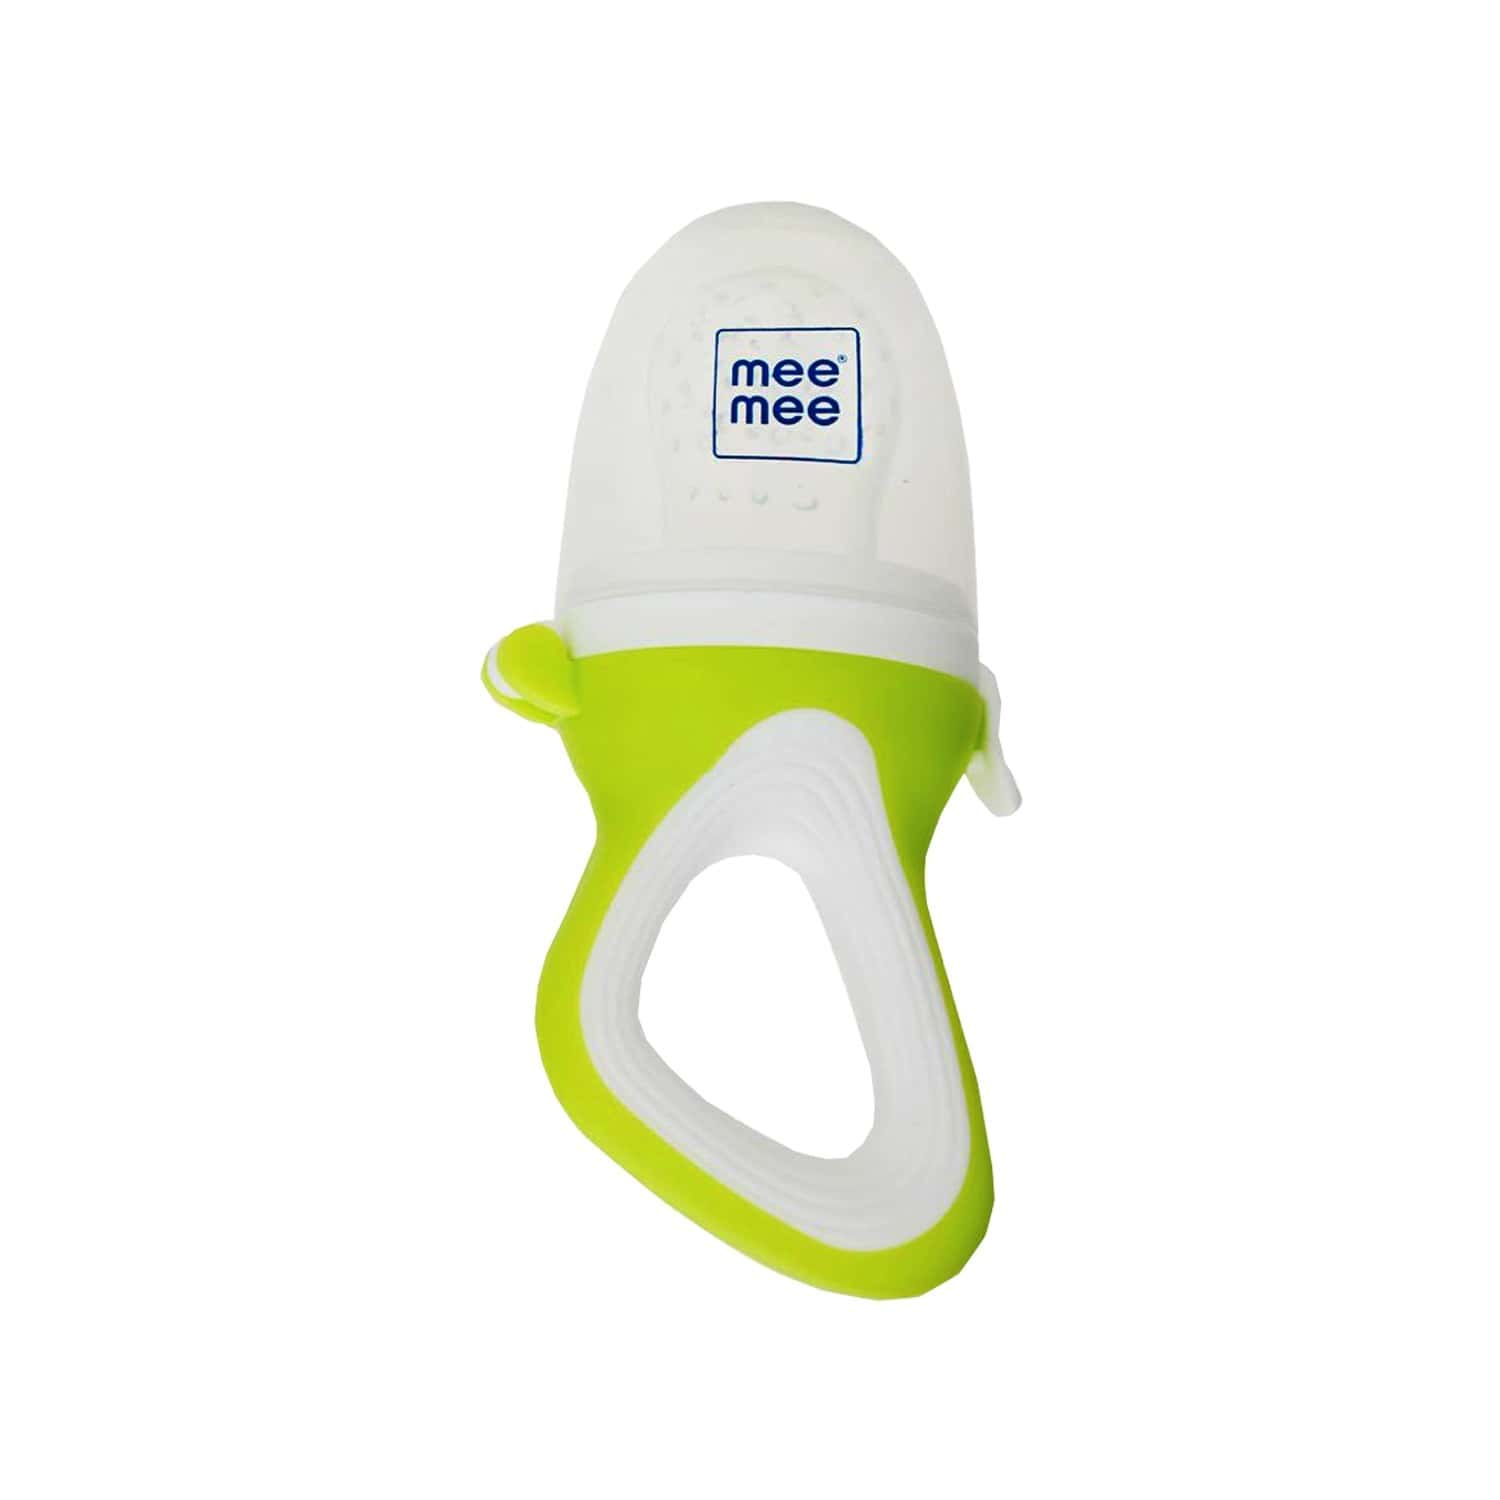 Mee Mee Fruit & Food Nibbler With Silicone Sack (green)